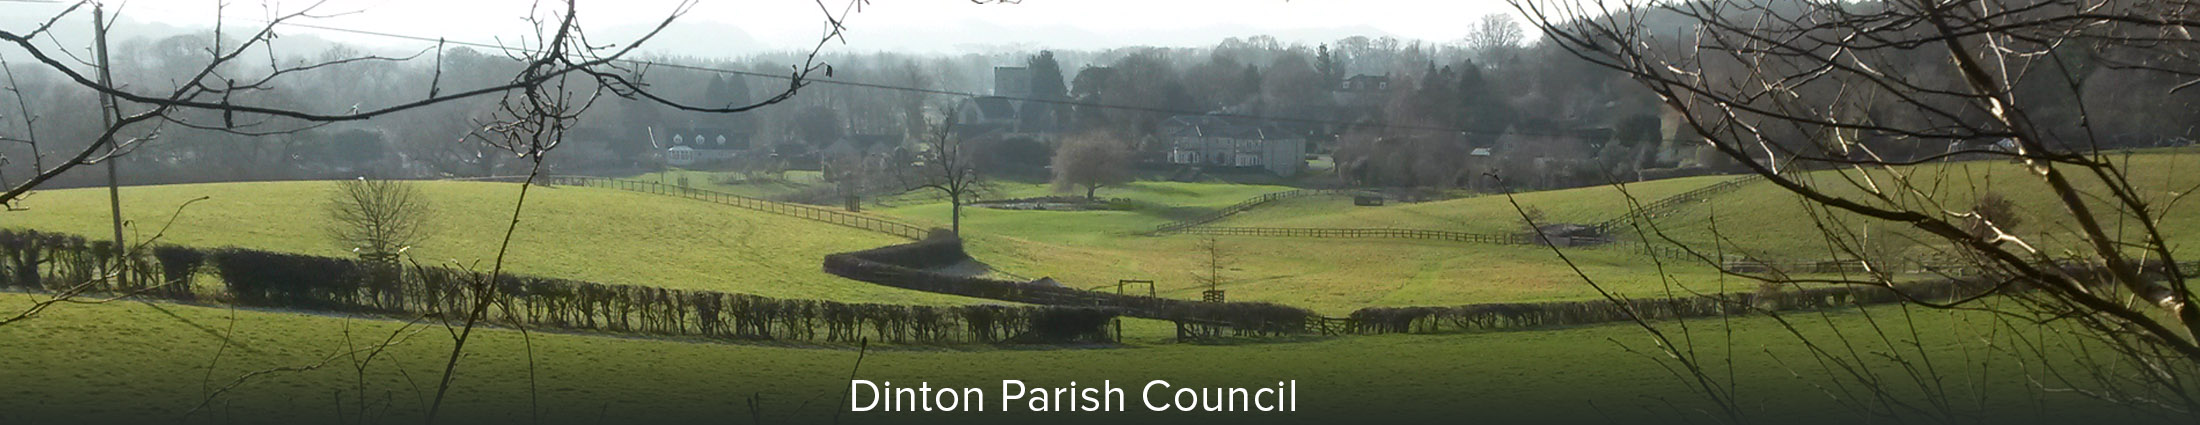 Header Image for Dinton Parish Council